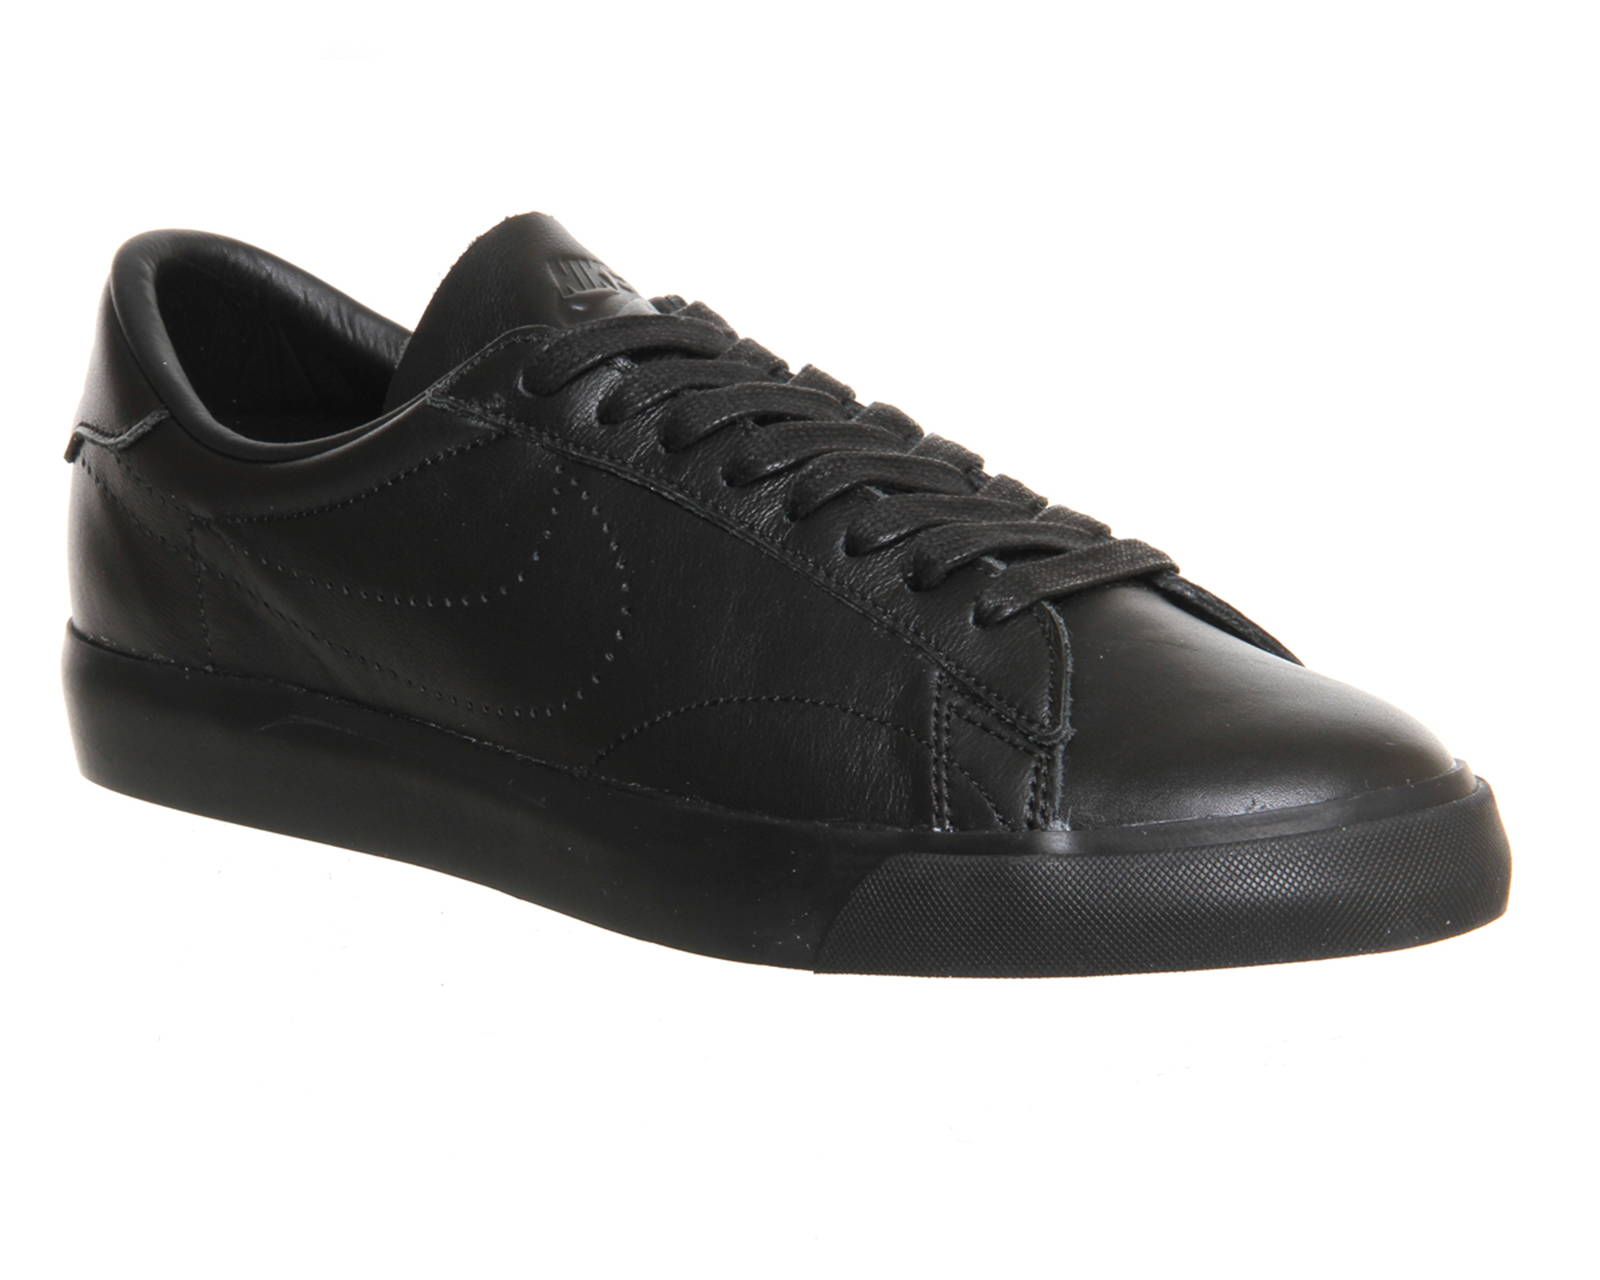 How To Clean Black Leather Tennis Shoes